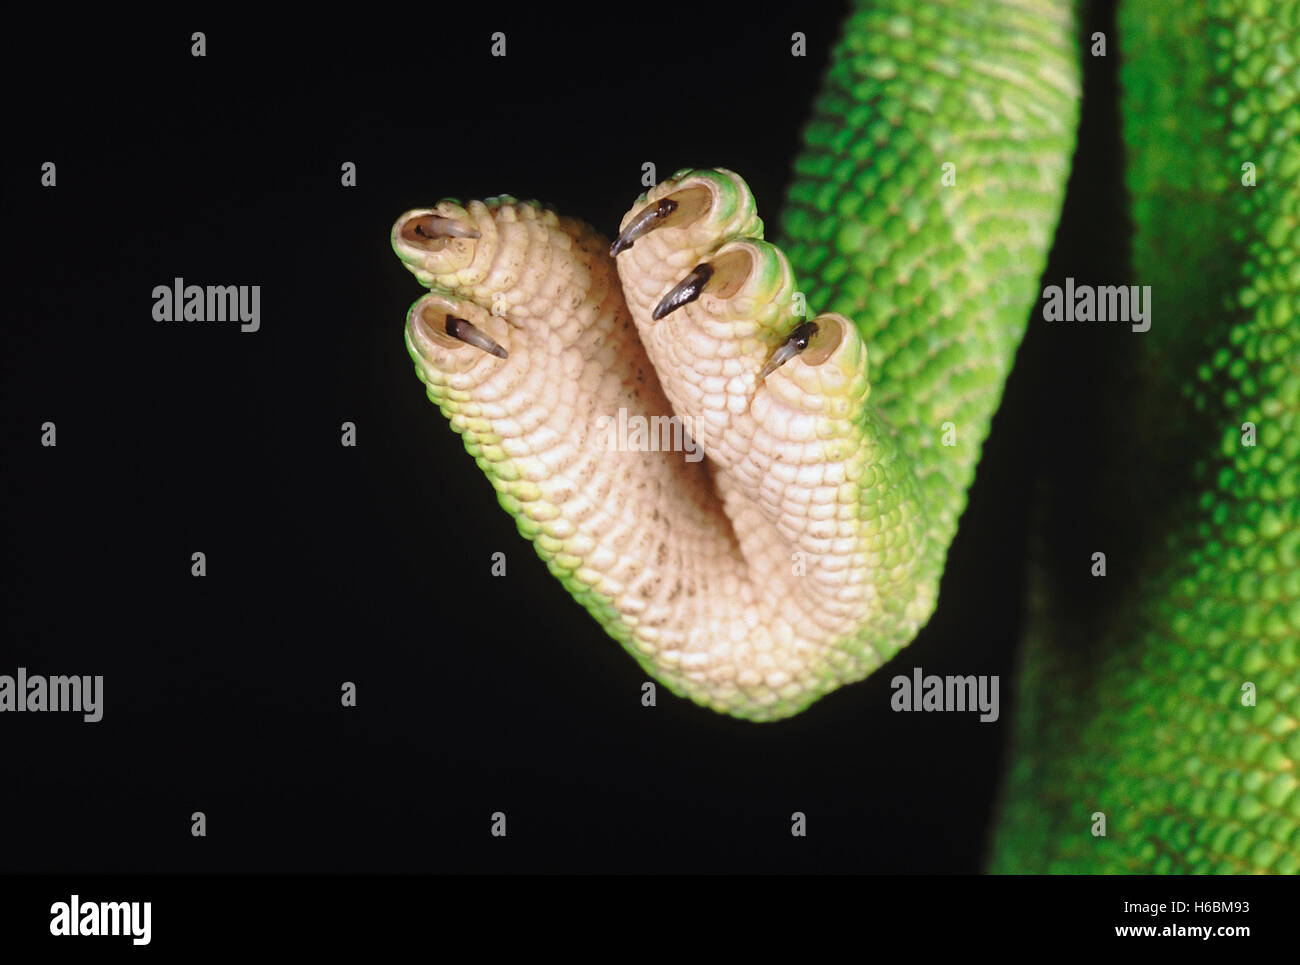 Chameleon Zeylanicus. A close up of the foot and claws. The chameleon has the ability to change its colour as well - Stock Image